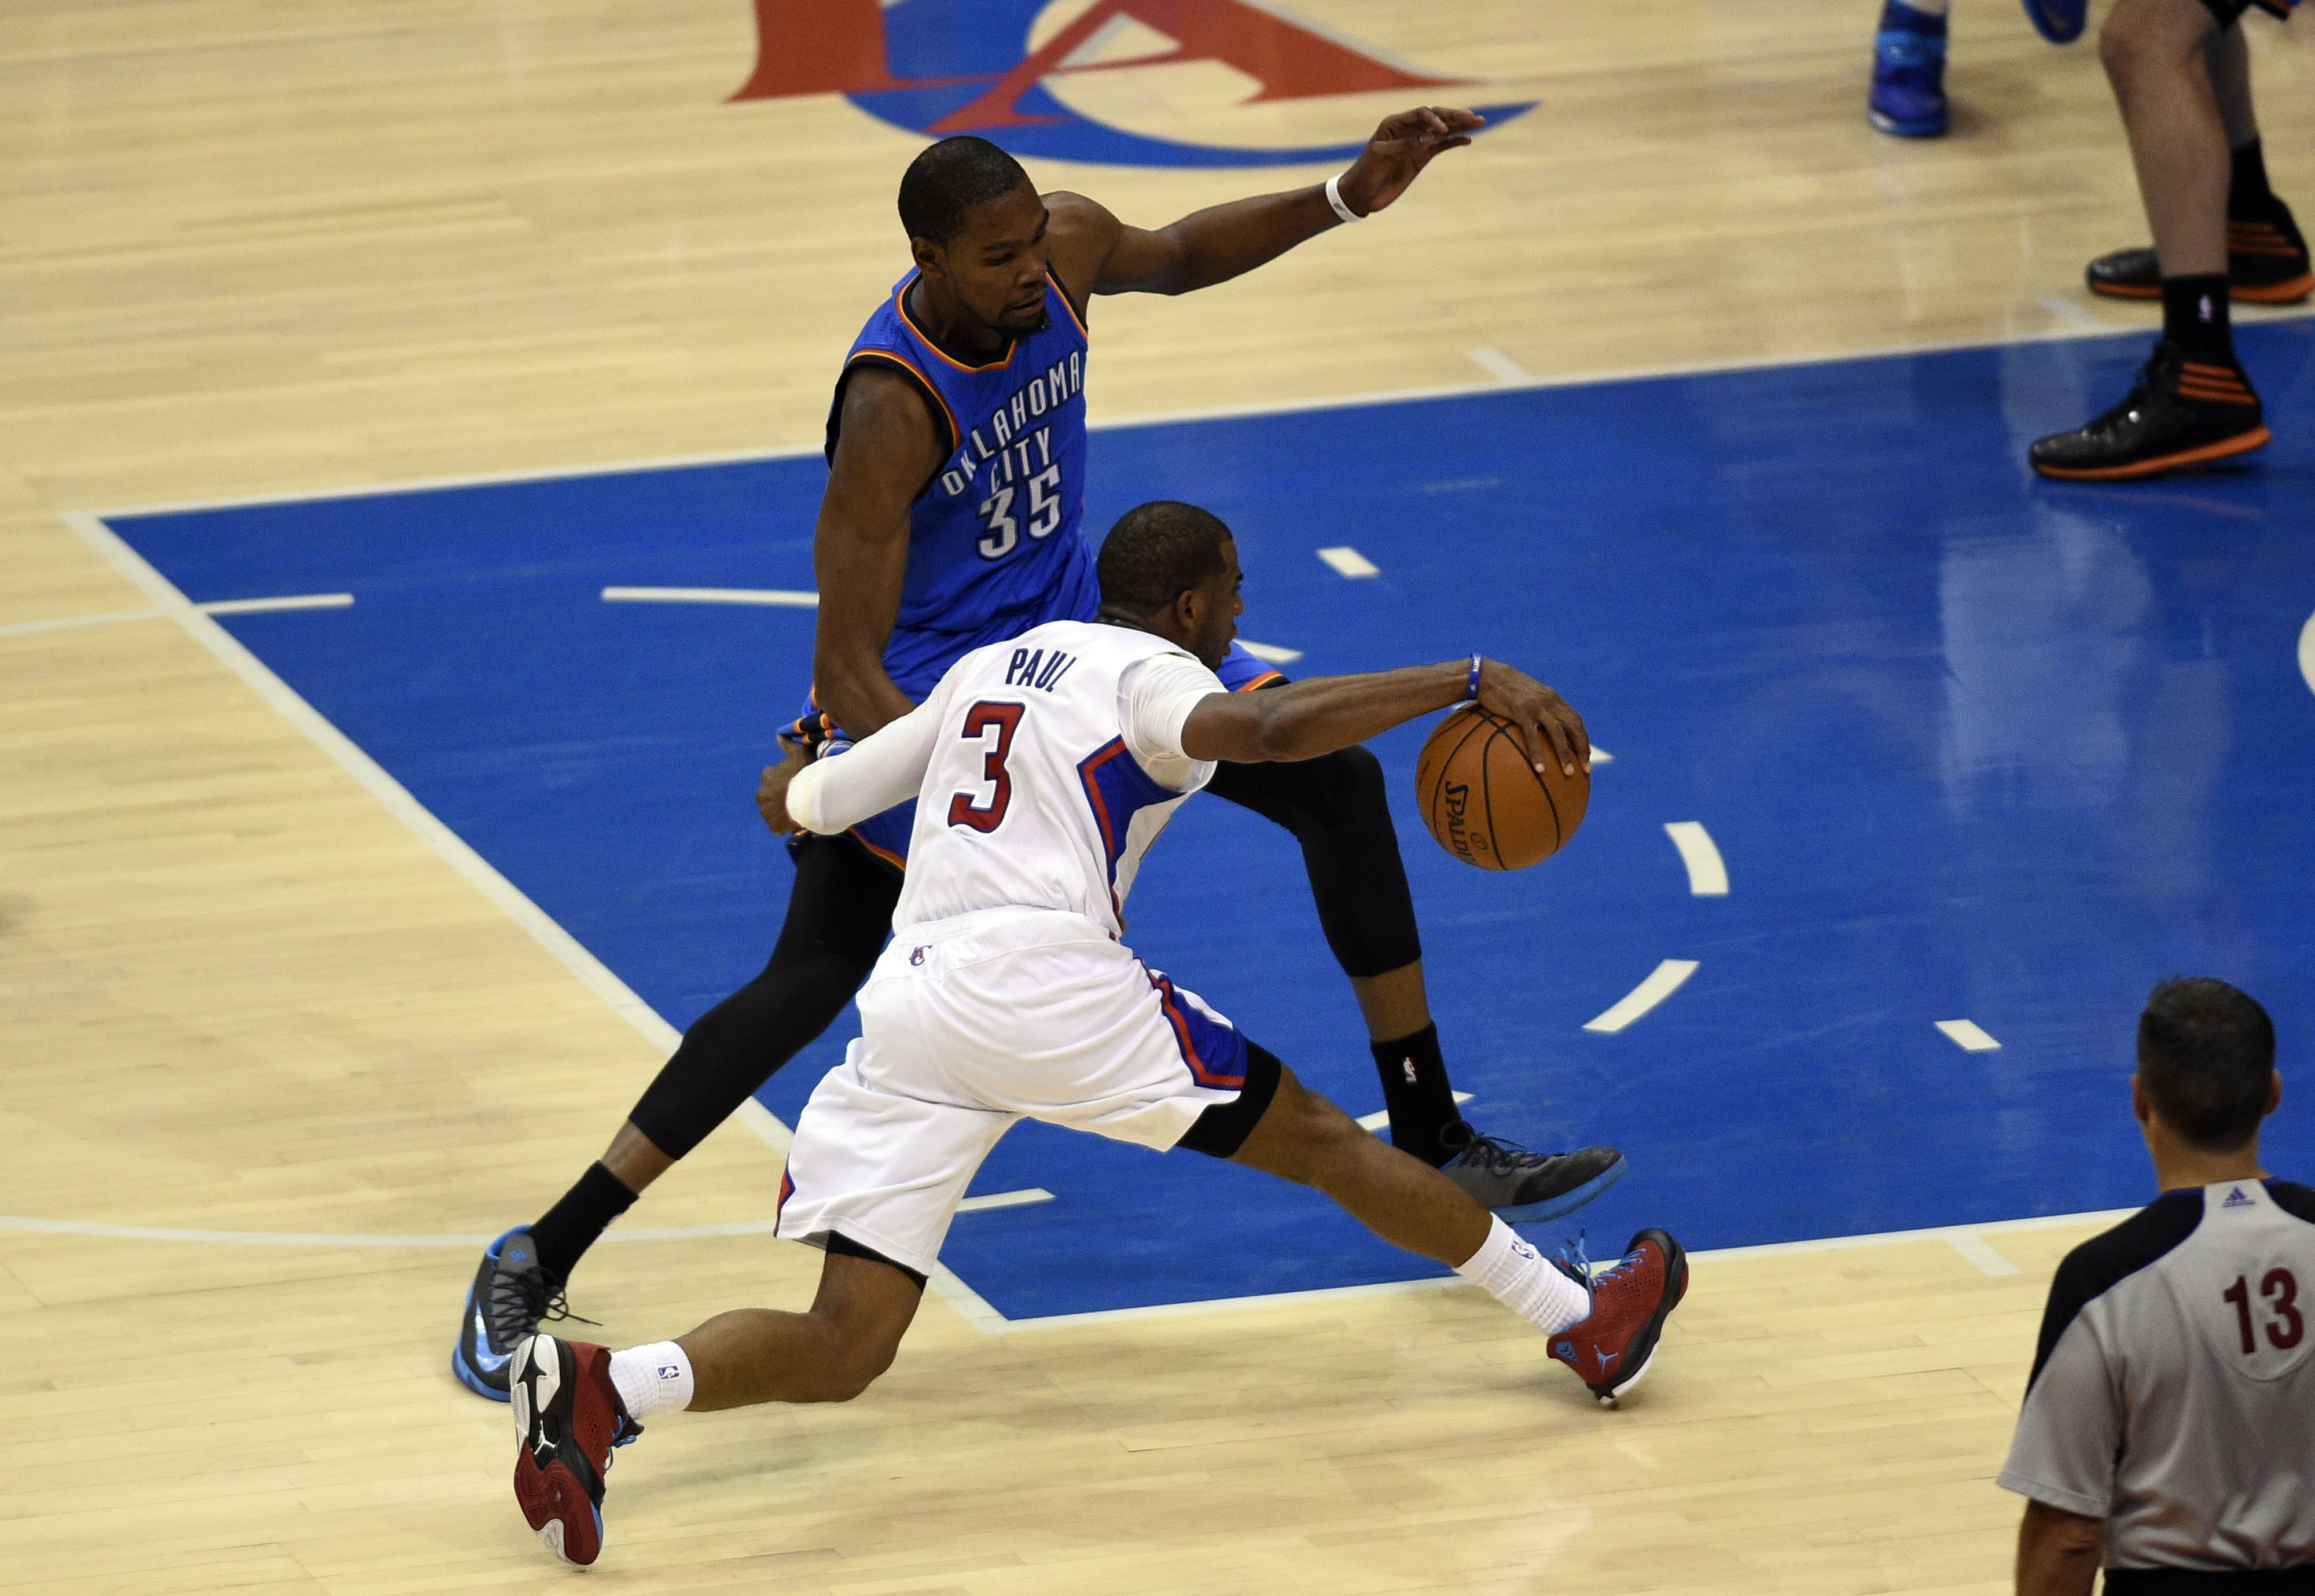 If you don't draft a point guard early, CP3 will break your ankles...